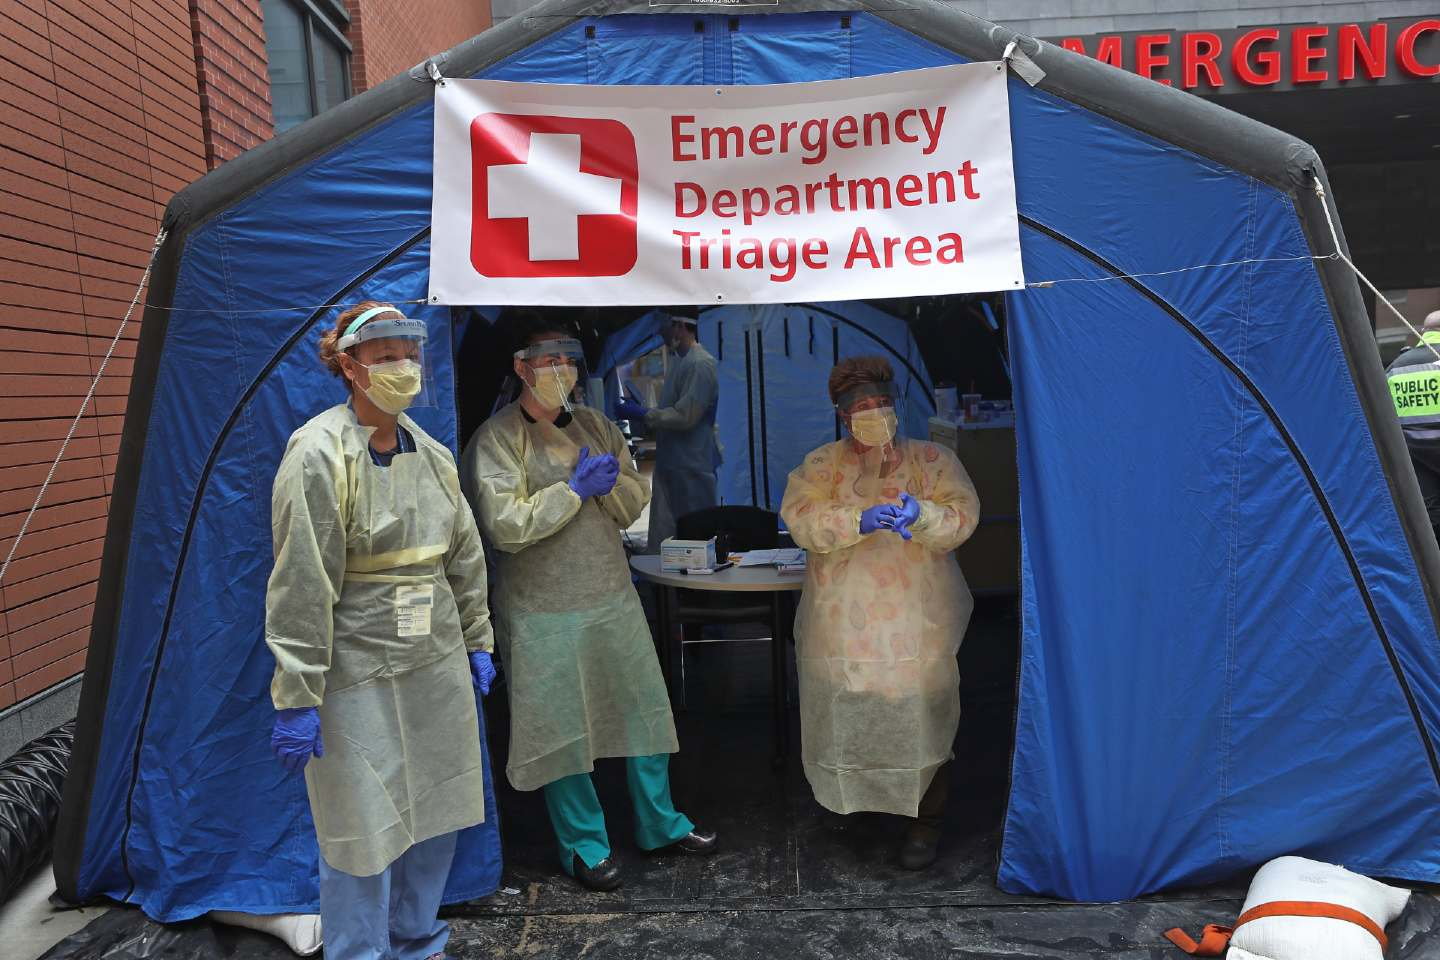 Nurses in protective gear stand outside a tent labelled